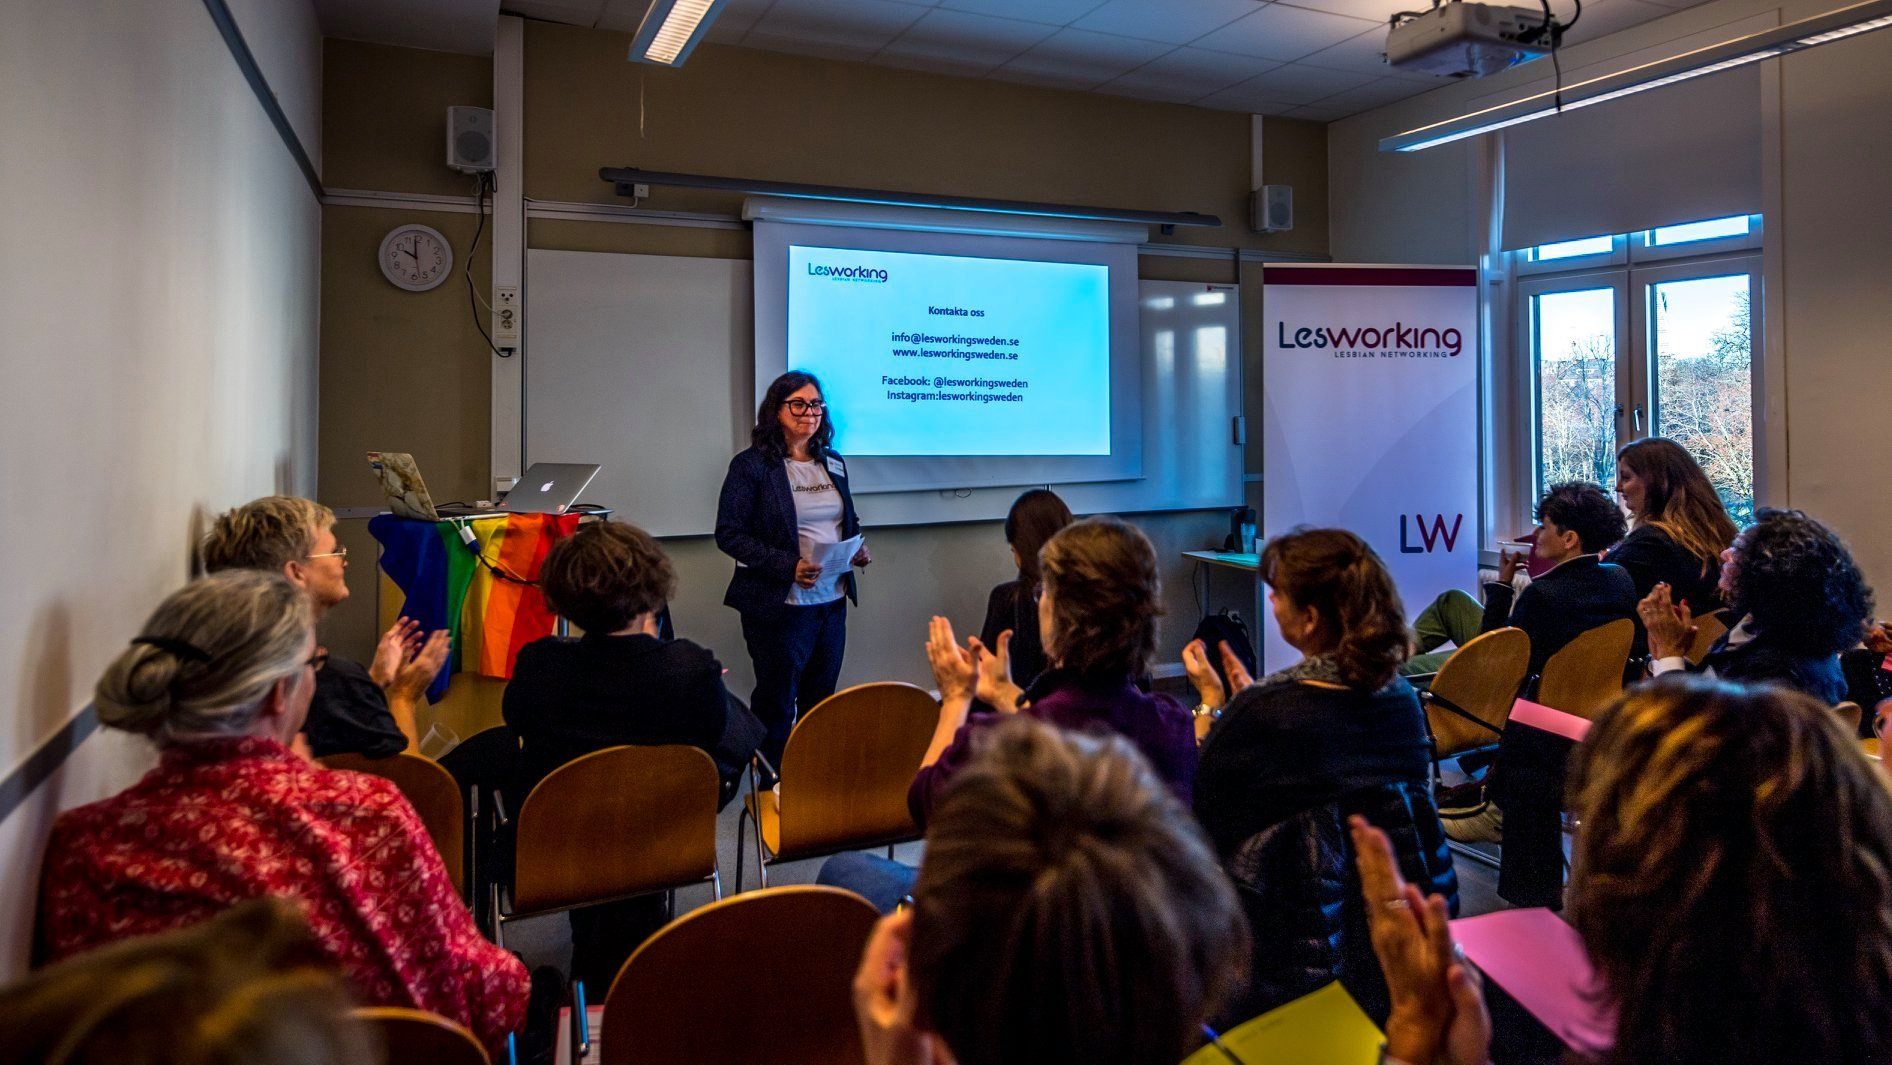 Edith Escobar - Lesworking Sweden